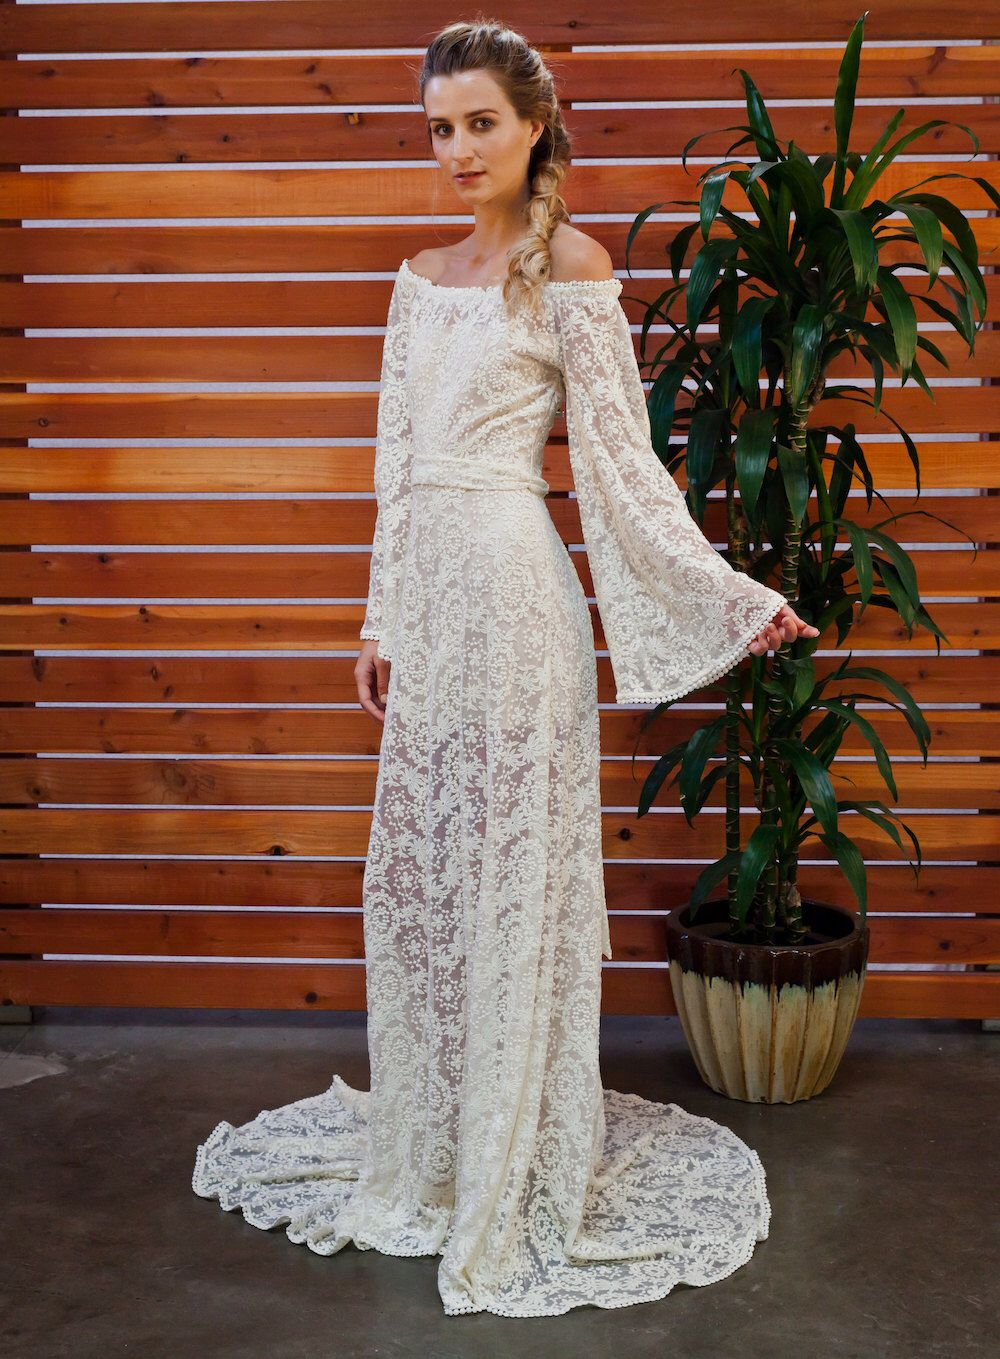 Sydnie offshoulder rustic bohemian wedding dress boho off